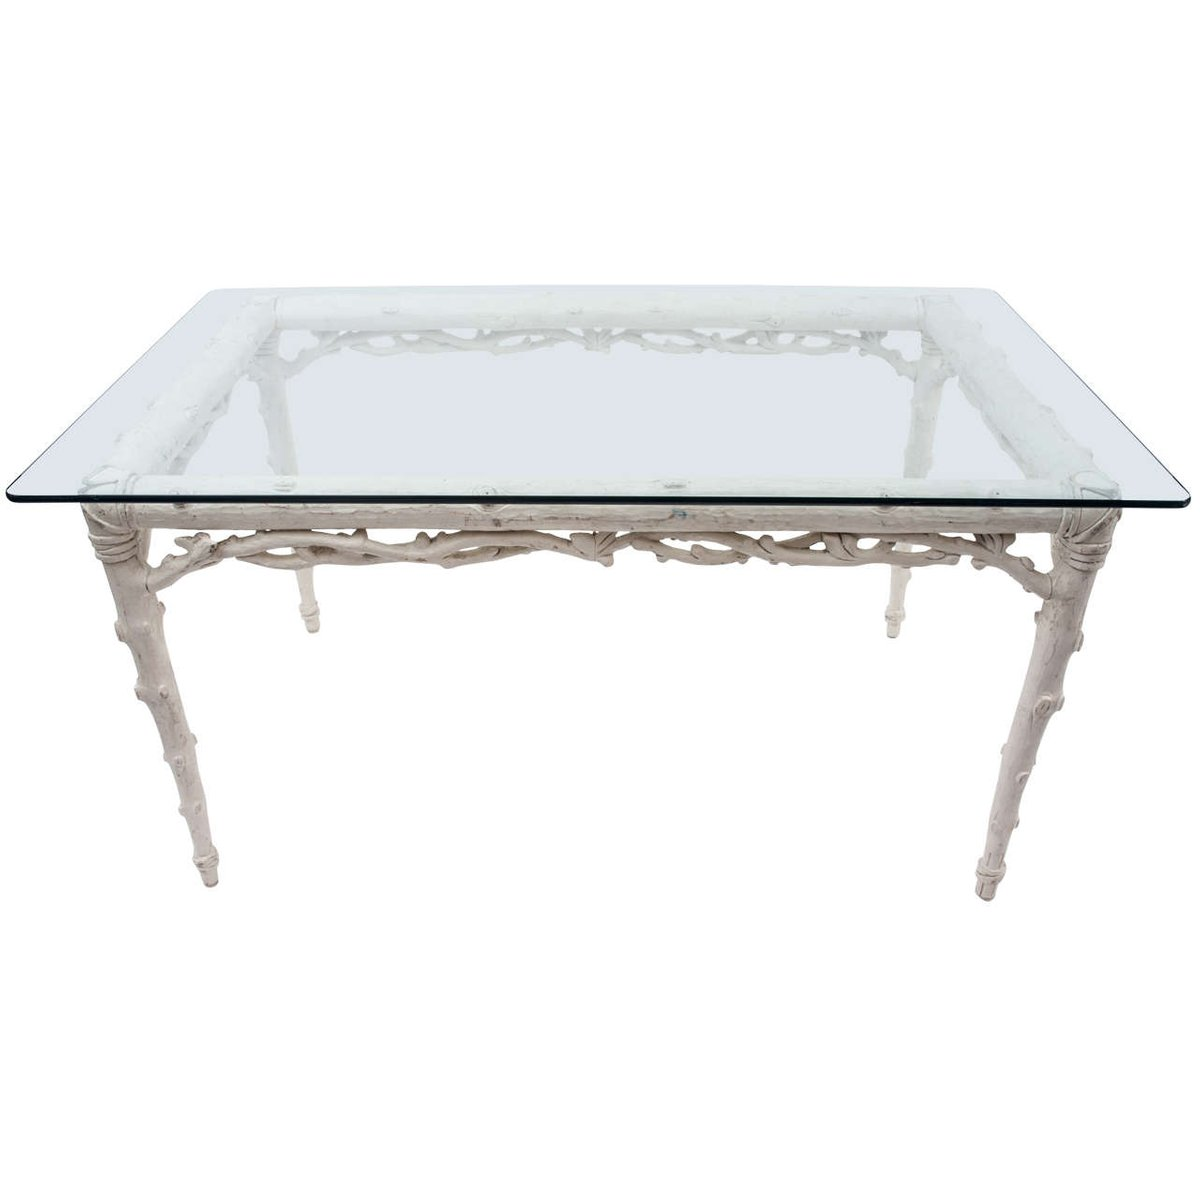 Carved wood coffee table by maison jansen for sale at pamono Carved wood coffee table